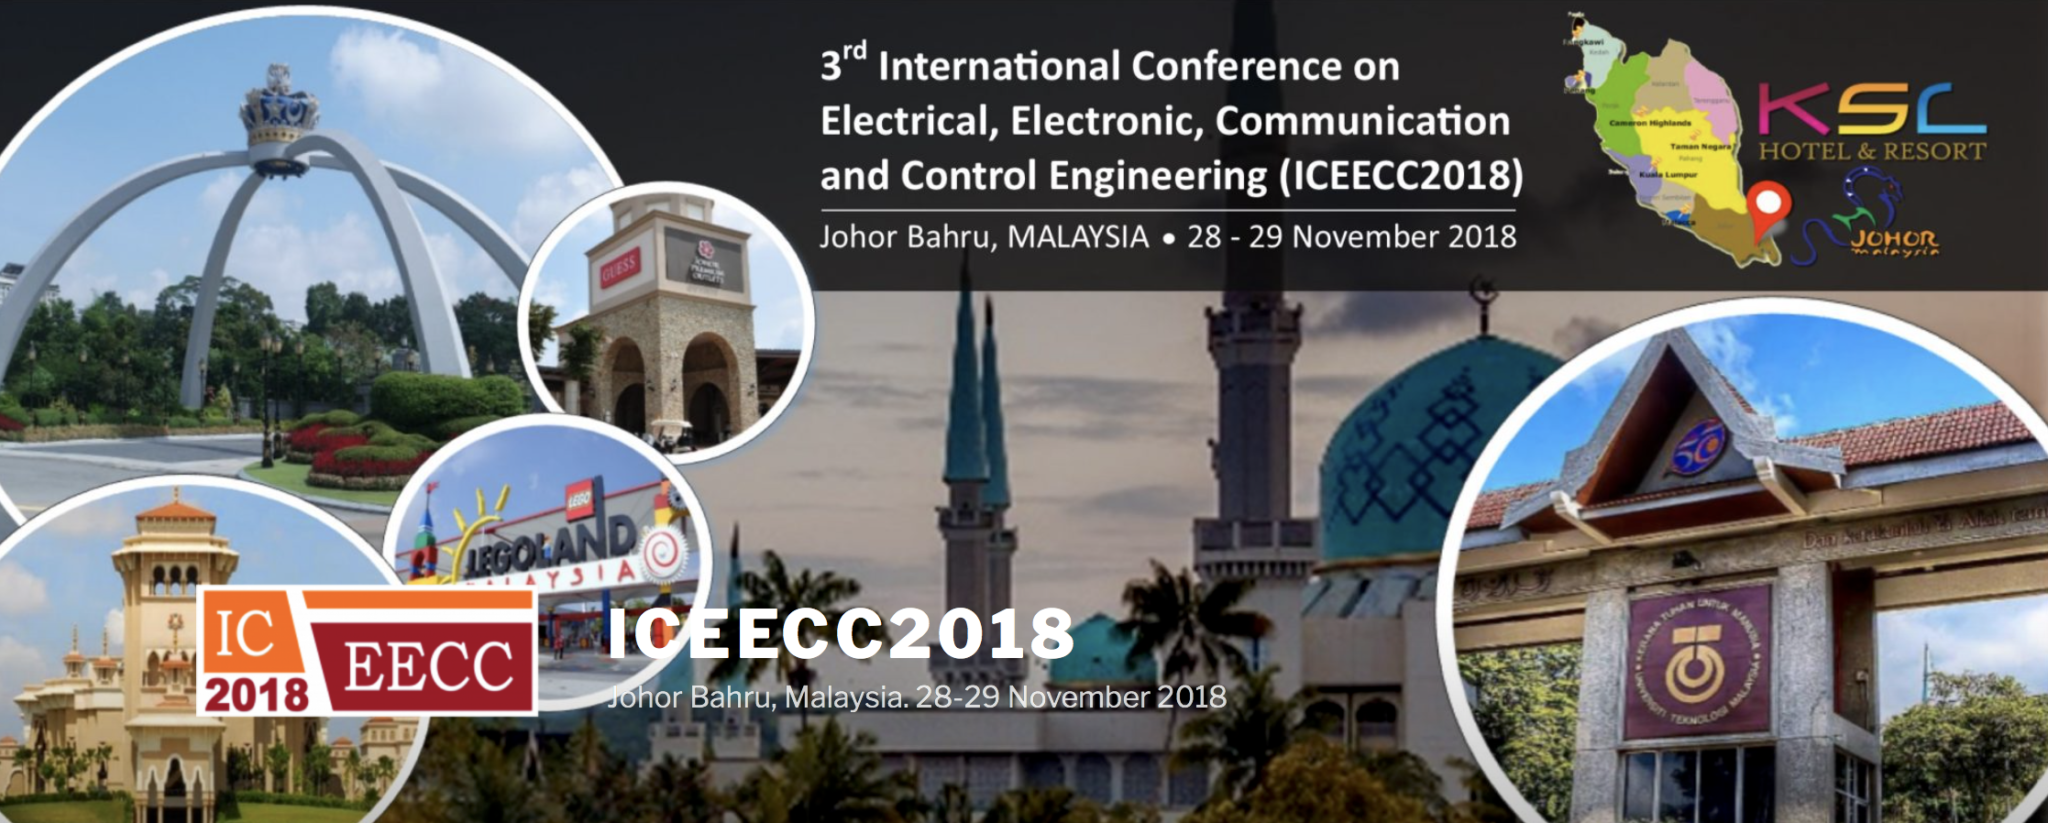 Call for Papers – The 3rd International Conference on Electrical, Electronic, Communication and Control Engineering (ICEECC 2018)